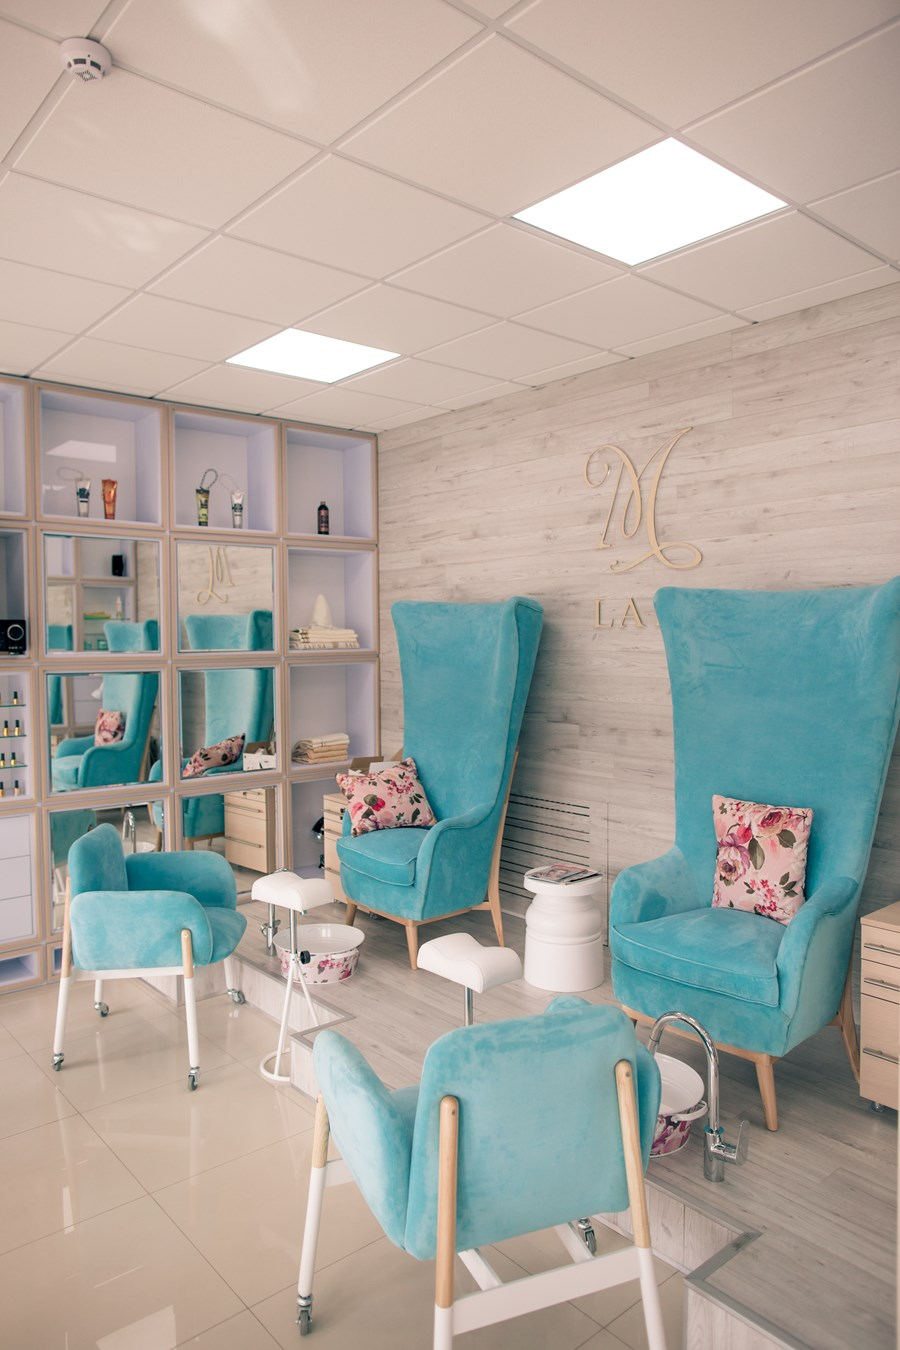 Beauty salon by Cult of Design 10